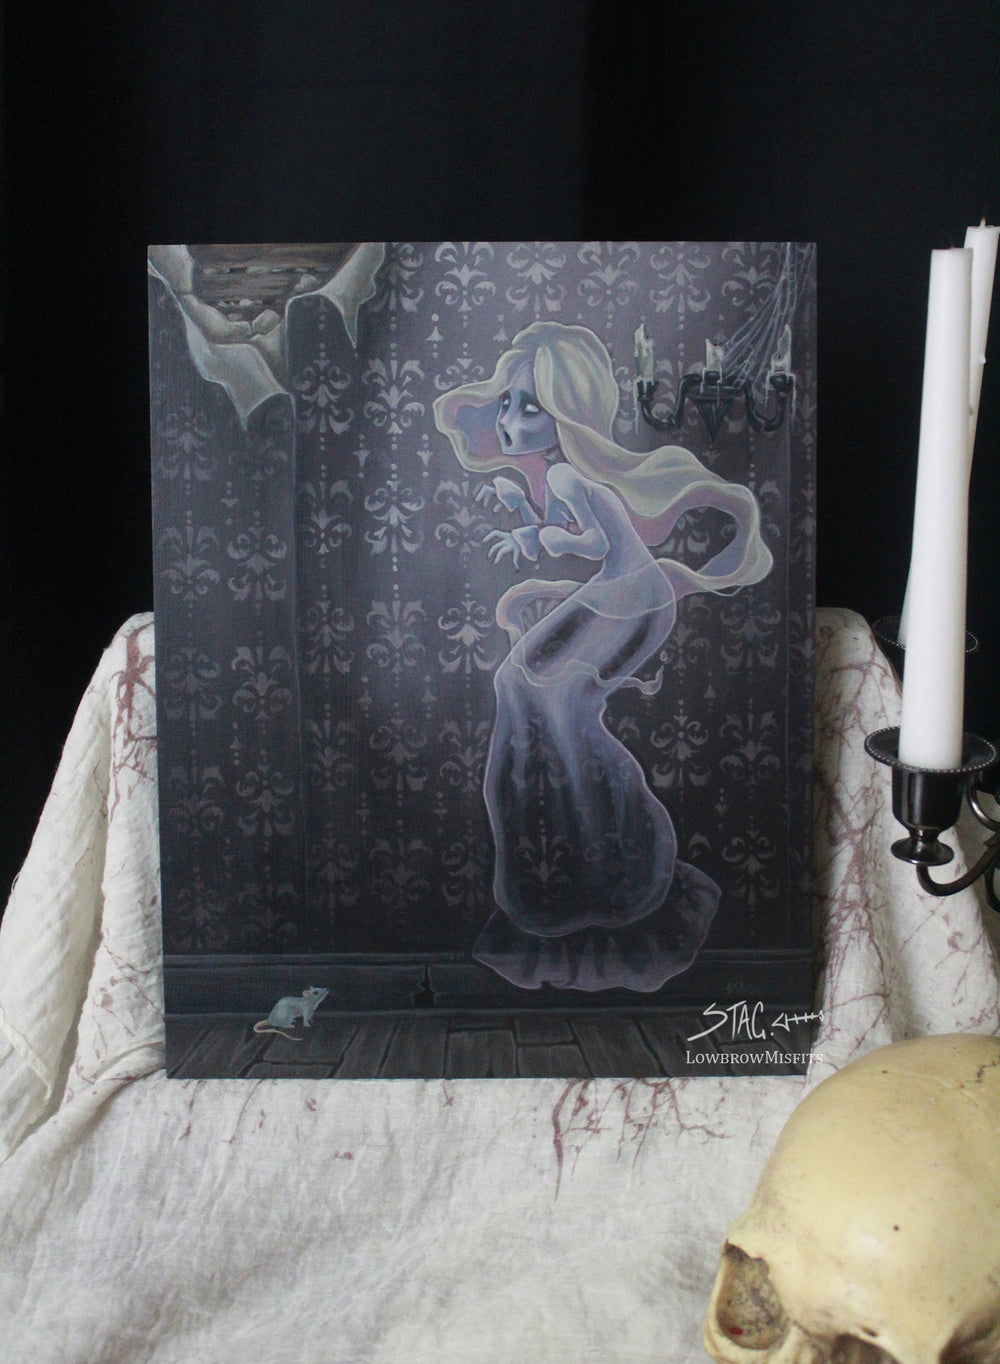 Wailing Halls- Original lowbrow banshee painting -Lowbrow misfits White Stag Art